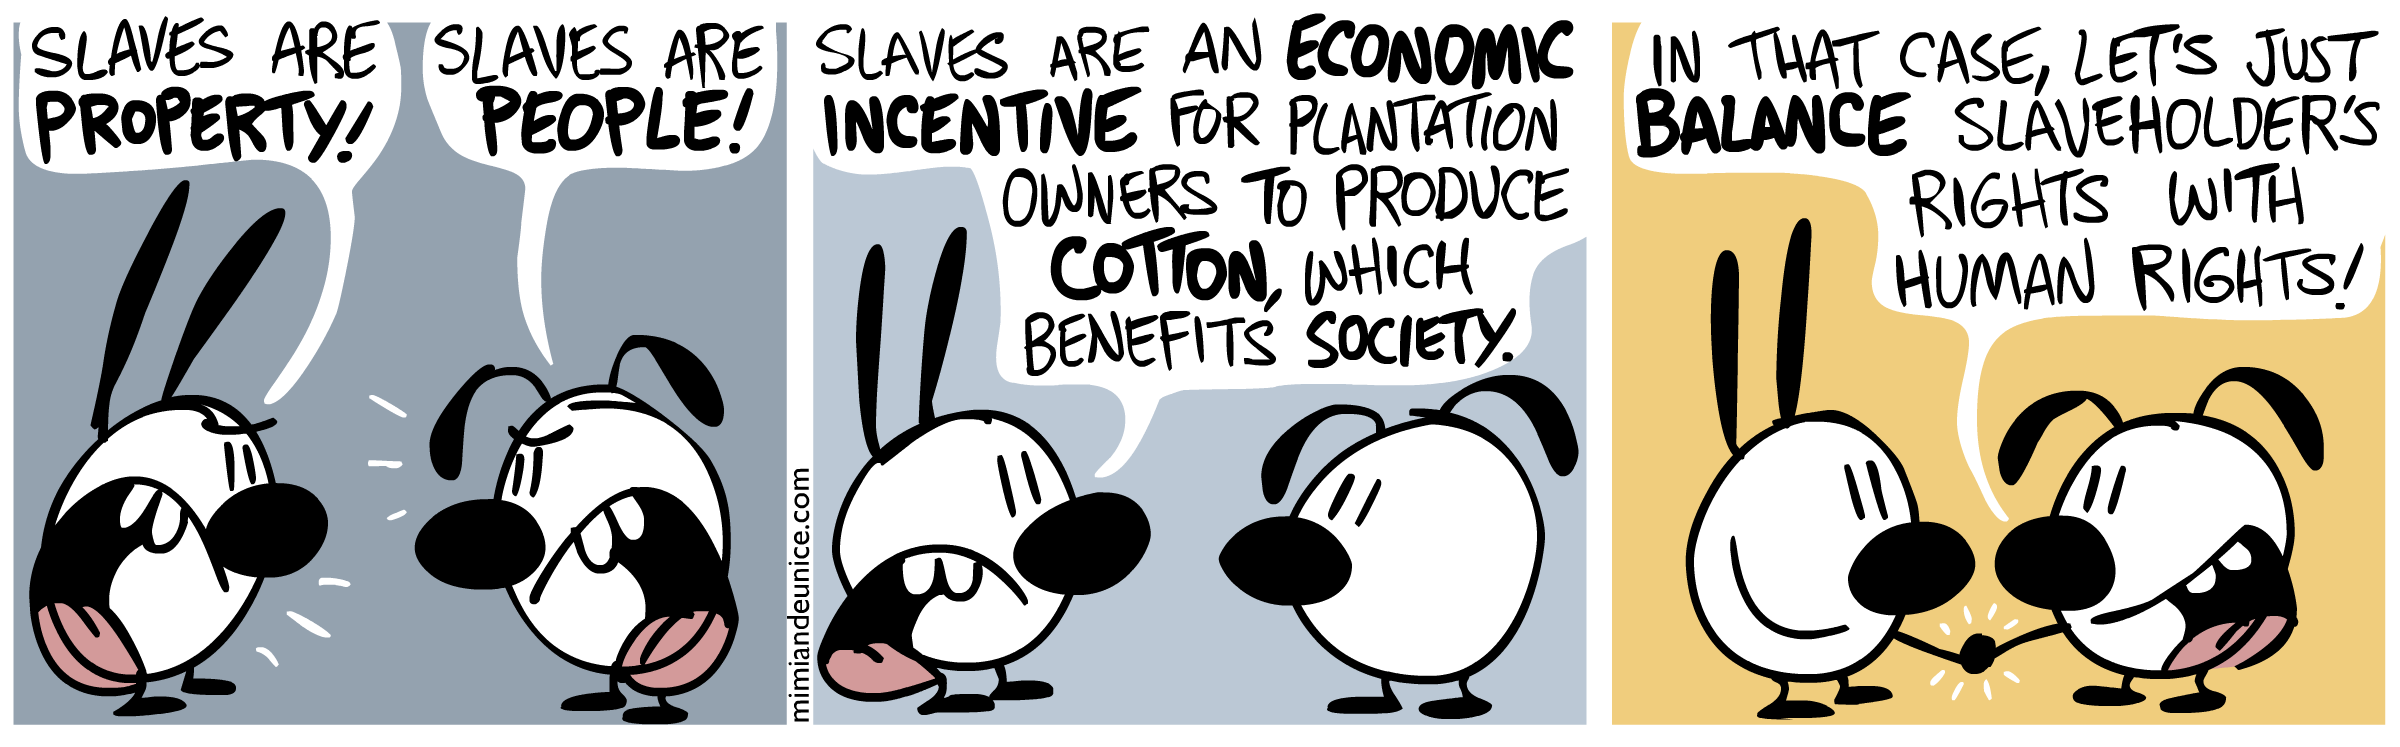 benefits slavery american economy Economic history did slavery make economic sense slavery and reap the benefits of their labour and some economic suggested that slavery in the american.